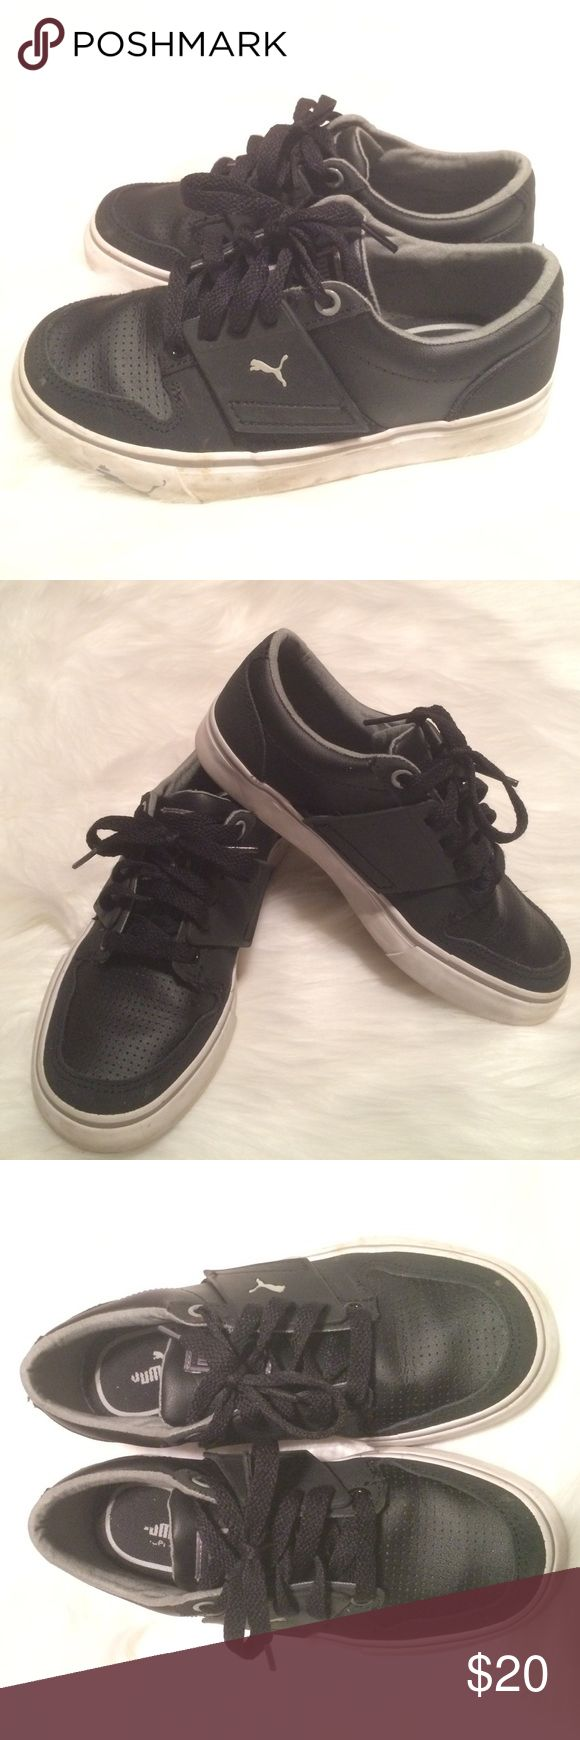 Boy's Puma leather shoes size:13.5 Up for sale pre-loved leather Puma sneakers.Worn only 4 times because my son complained they were too tight on him,I bought them without him trying them on.Great looking shoe.Size:13.5 in little boys.Color:Black Puma Shoes Sneakers